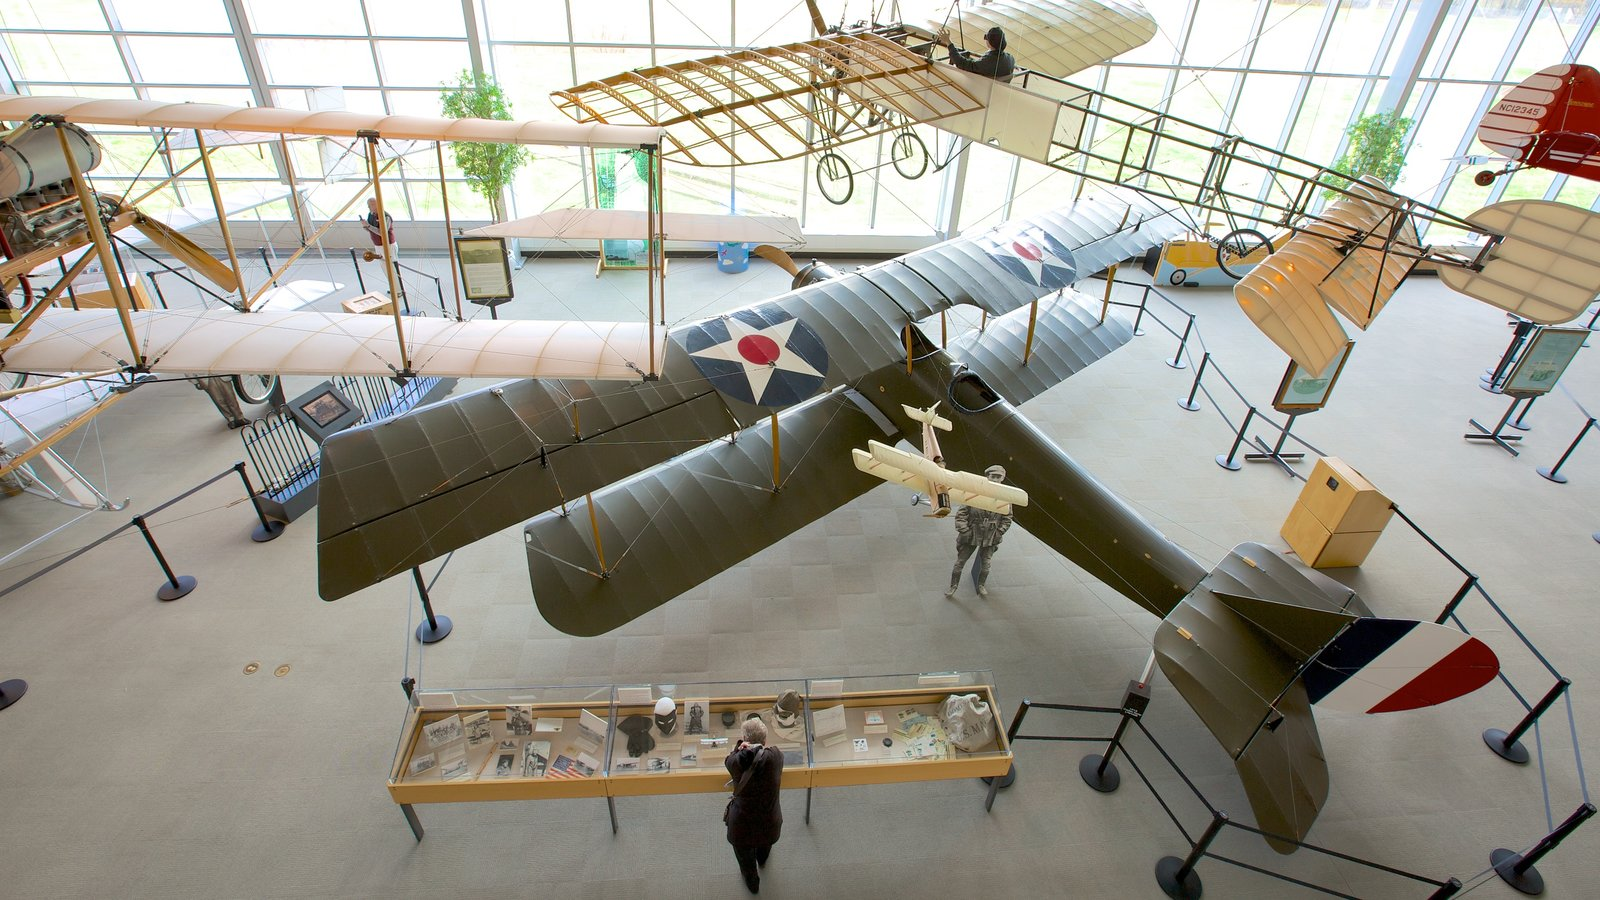 College Park Aviation Museum showing interior views, art and heritage architecture